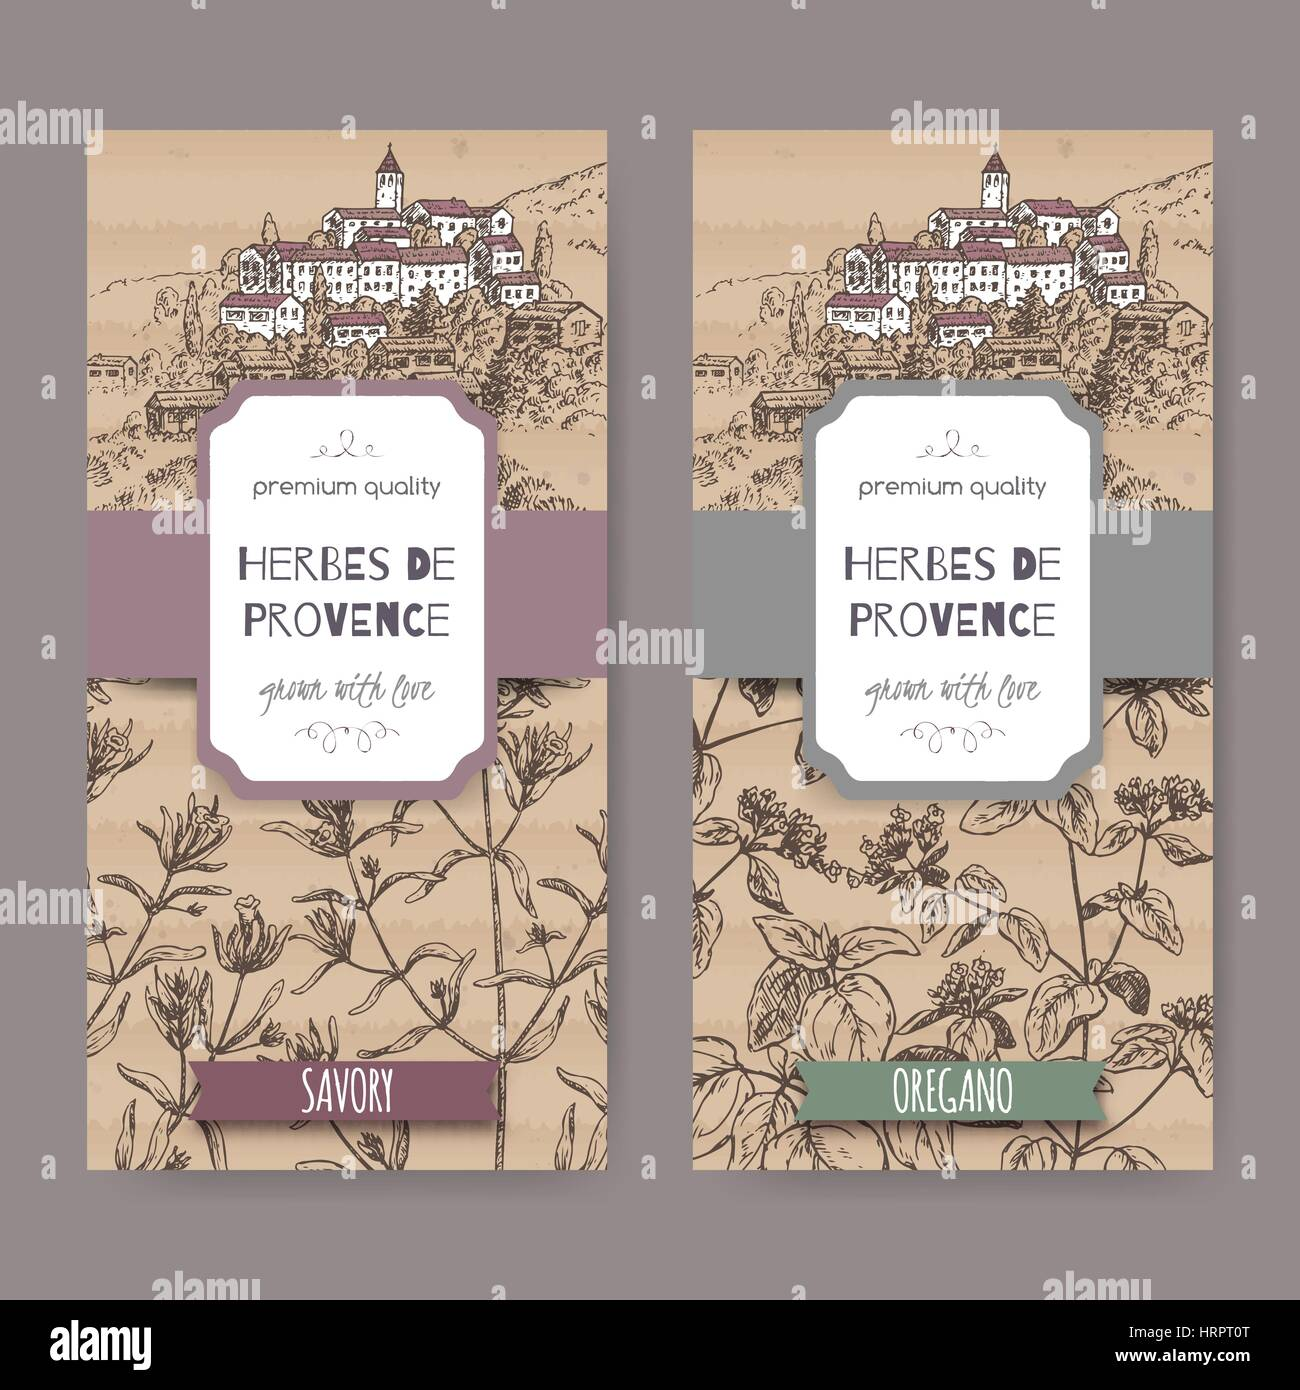 Two Herbes de Provence labels with town, savory and oregano. - Stock Vector